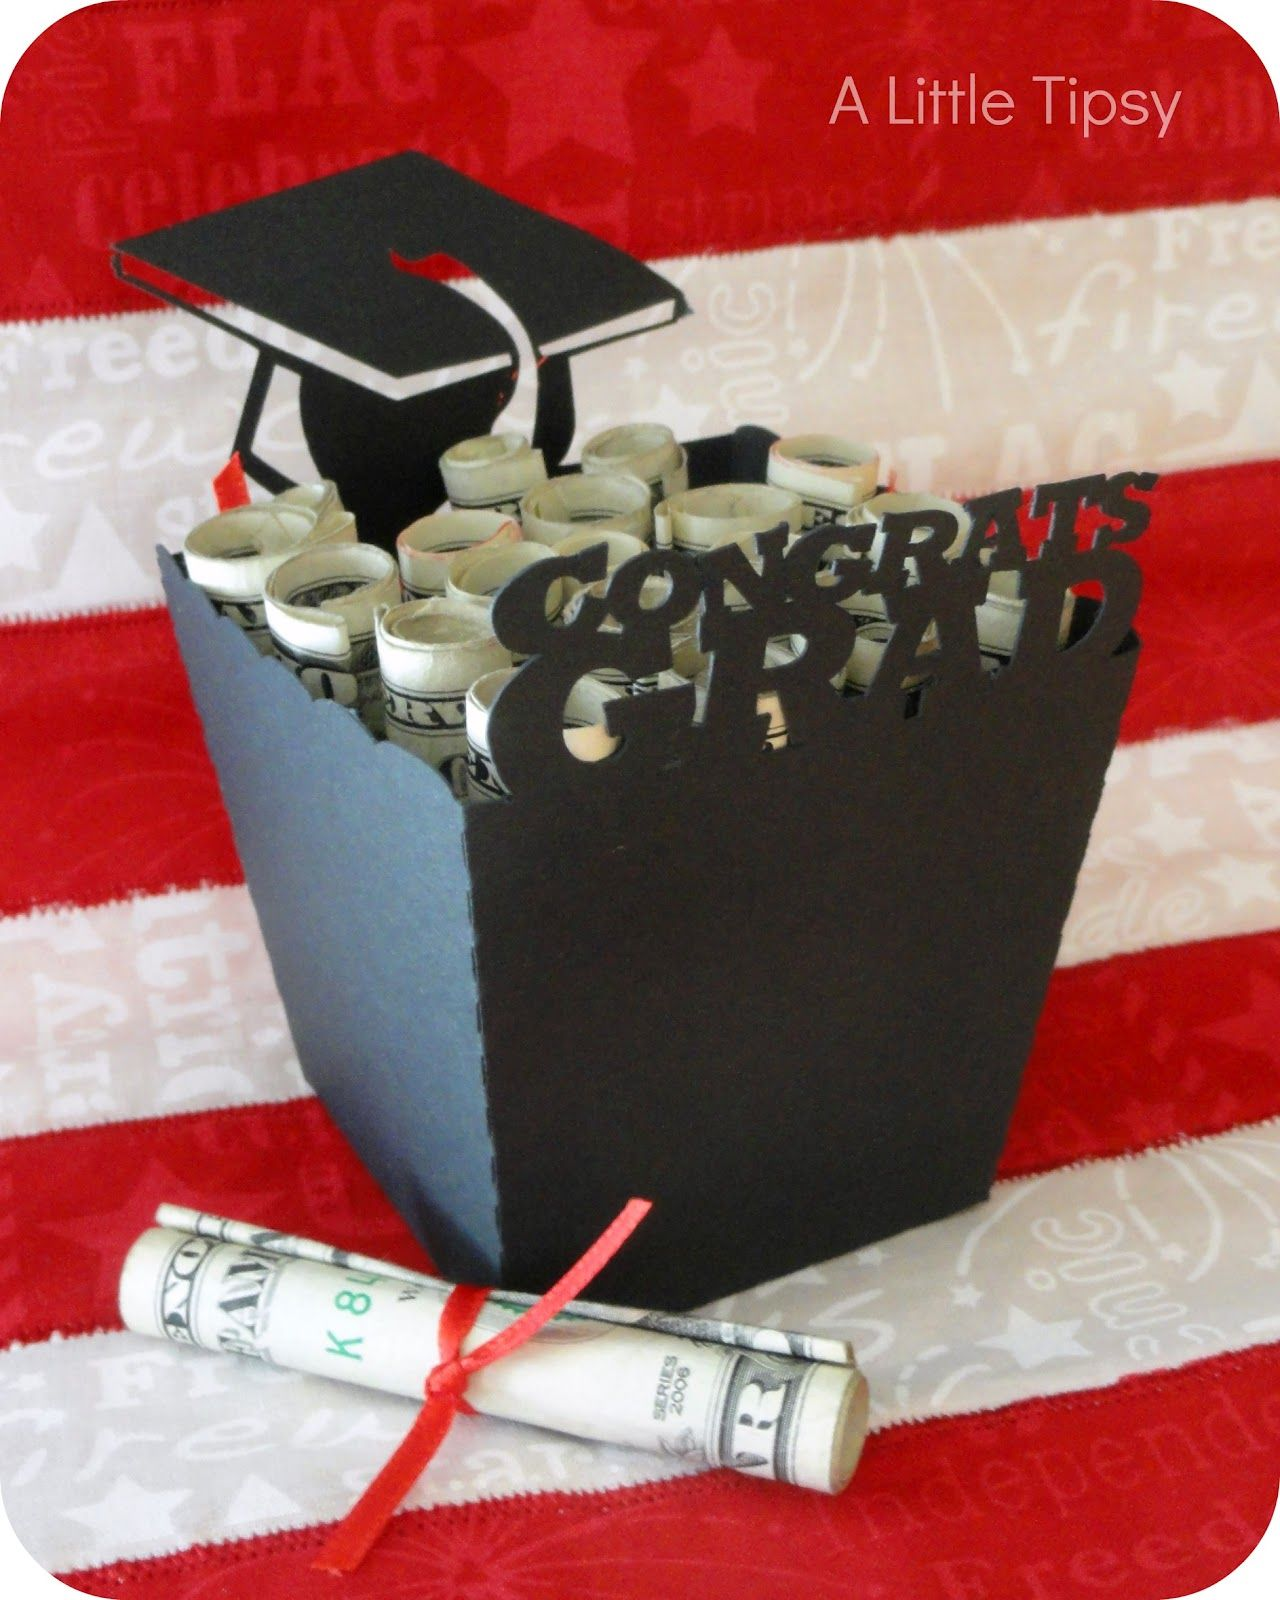 Last Minute Graduation Gift Diy Gifts Graduation Gifts